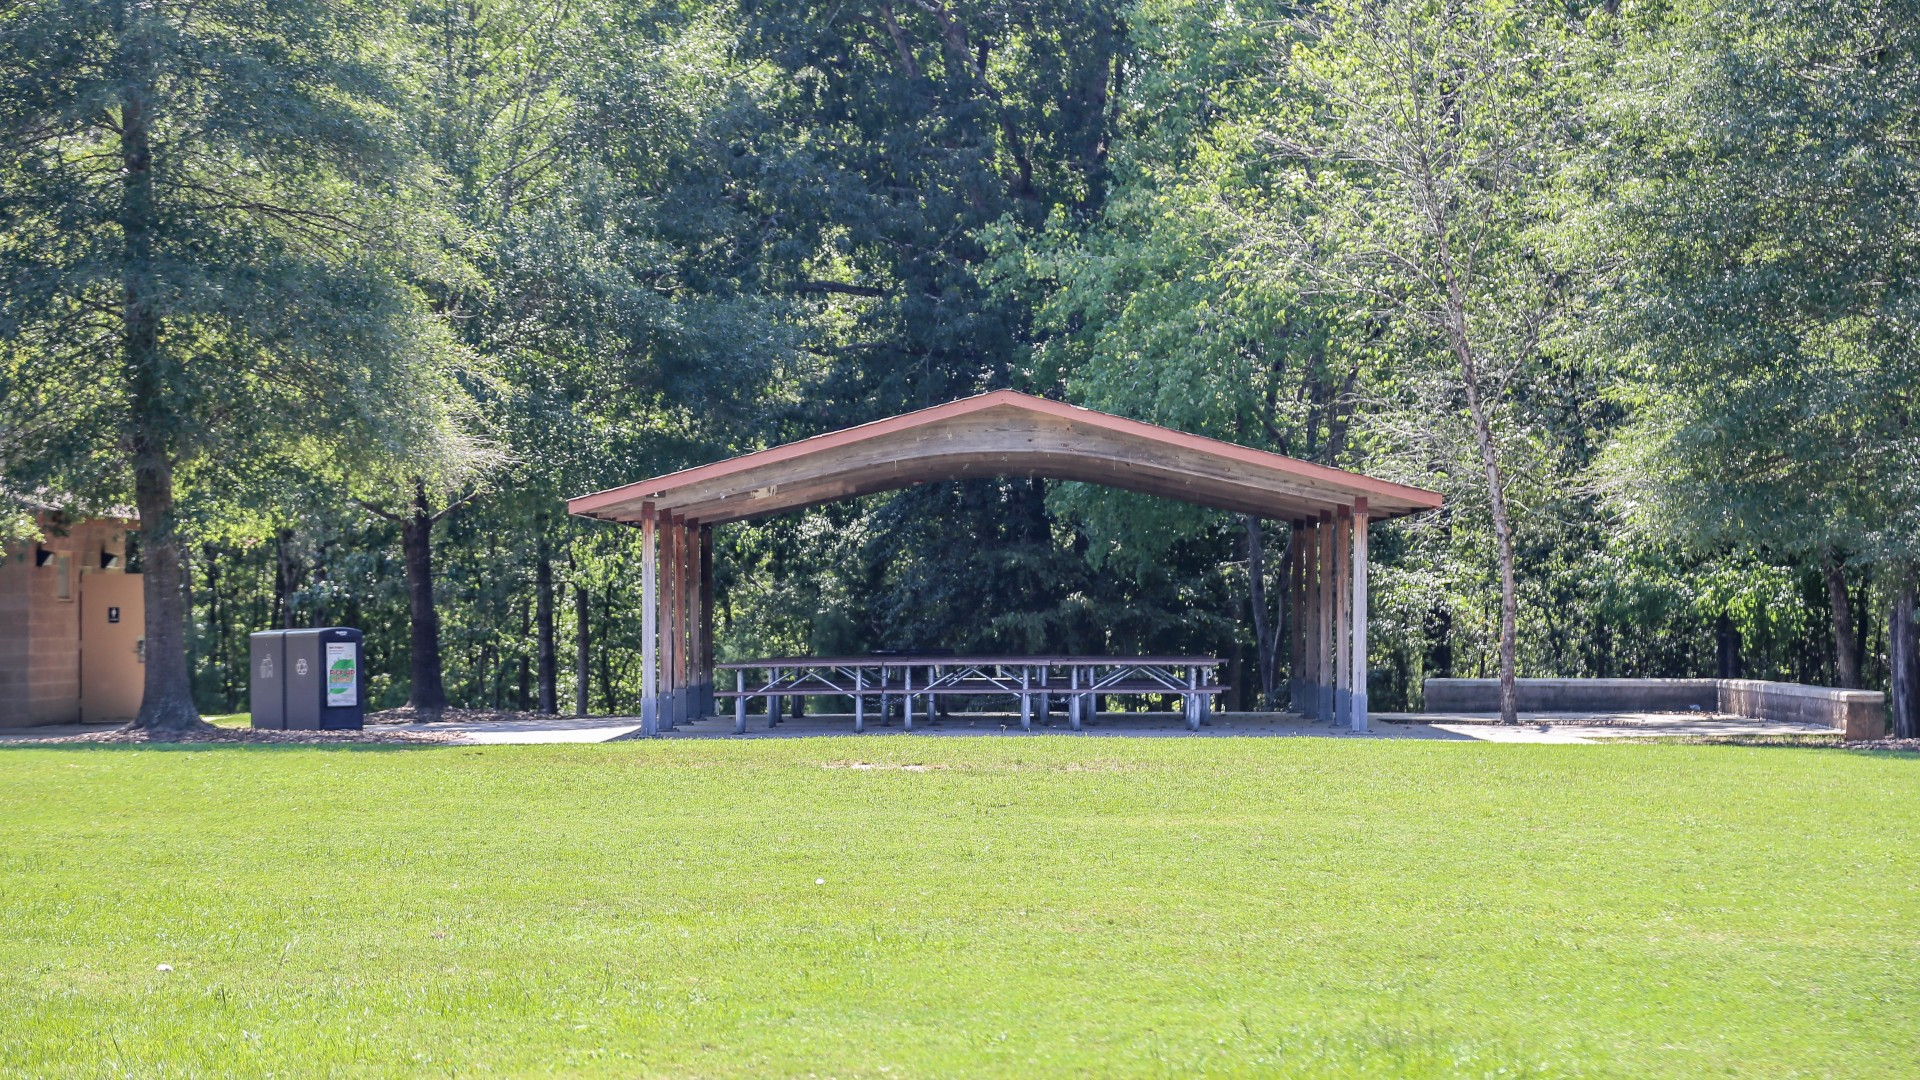 A second smaller picnic shelter with 12 tables near the restrooms